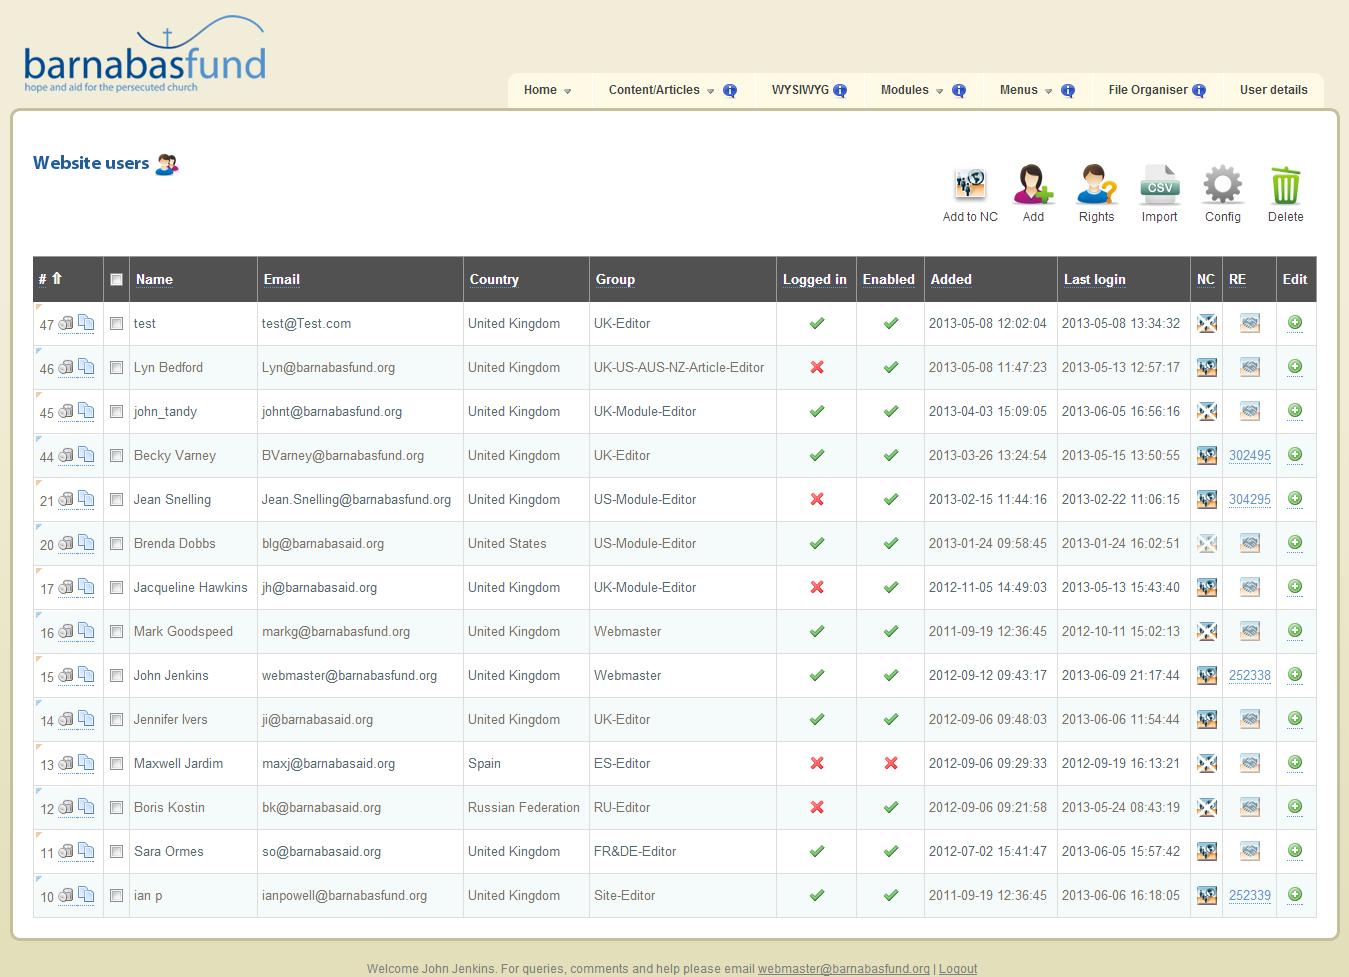 Barnabas Fund Backend Screen Shot